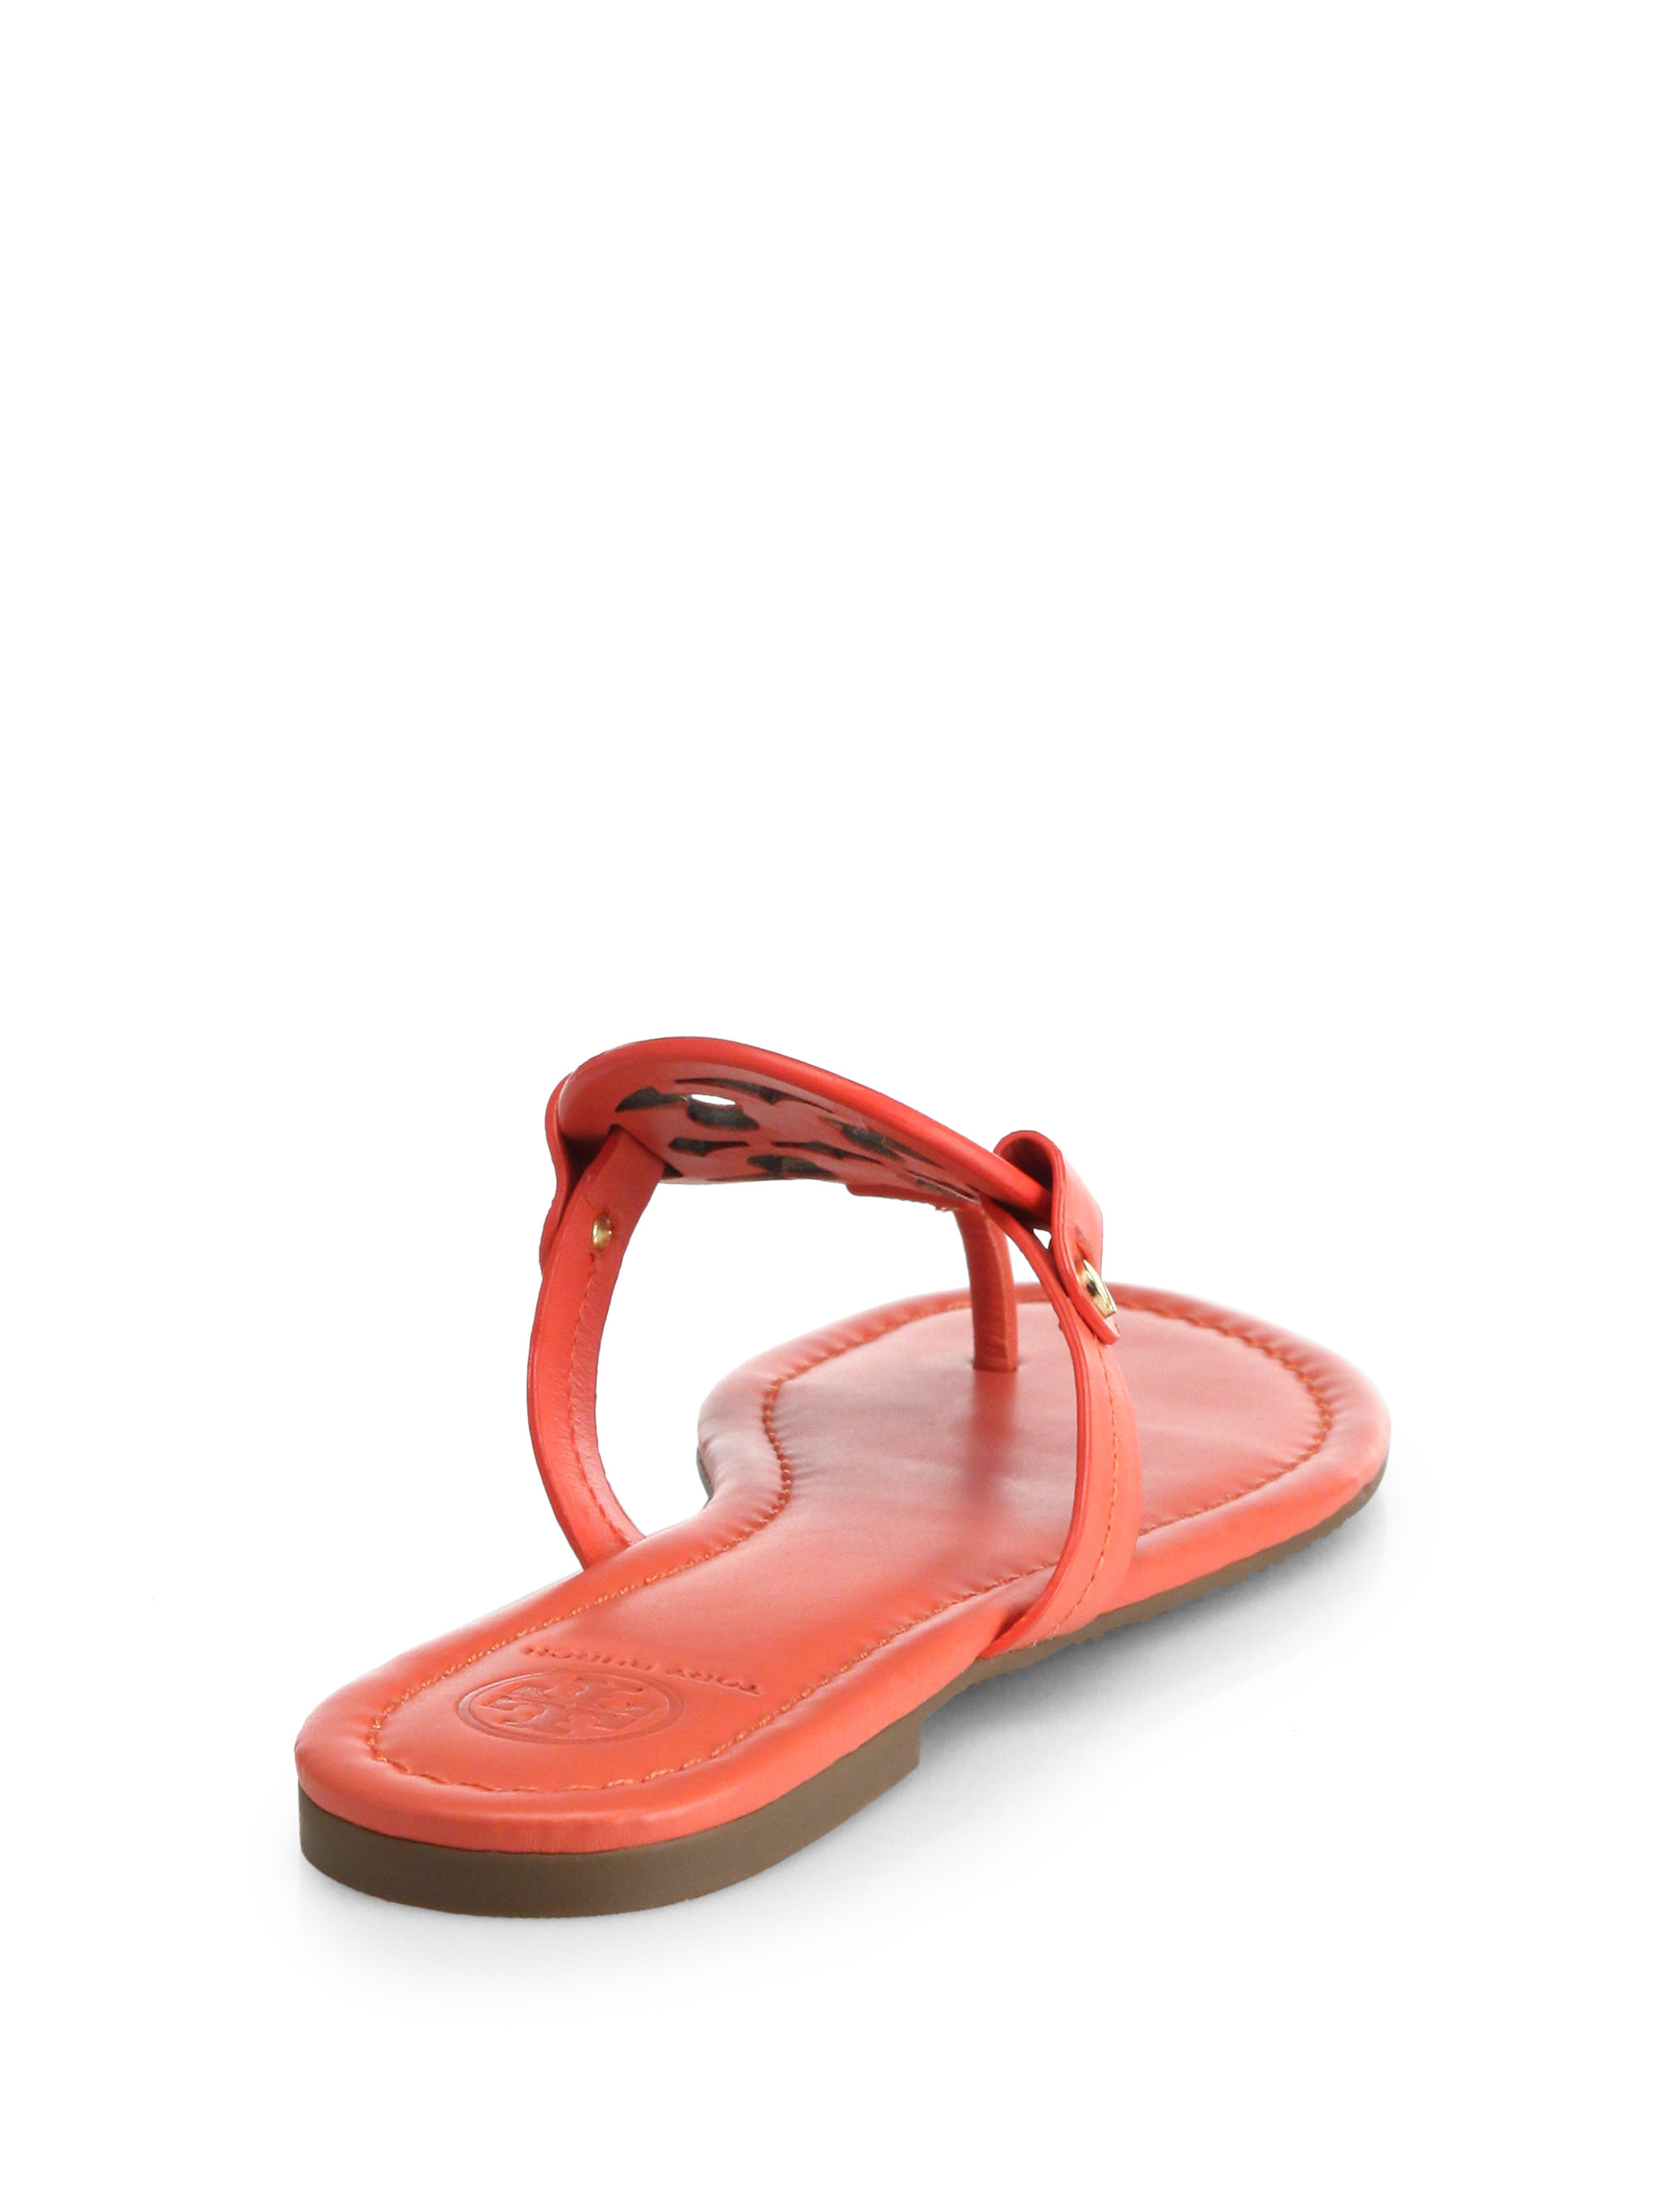 Lyst Tory Burch Miller Leather Logo Thong Sandals In Orange